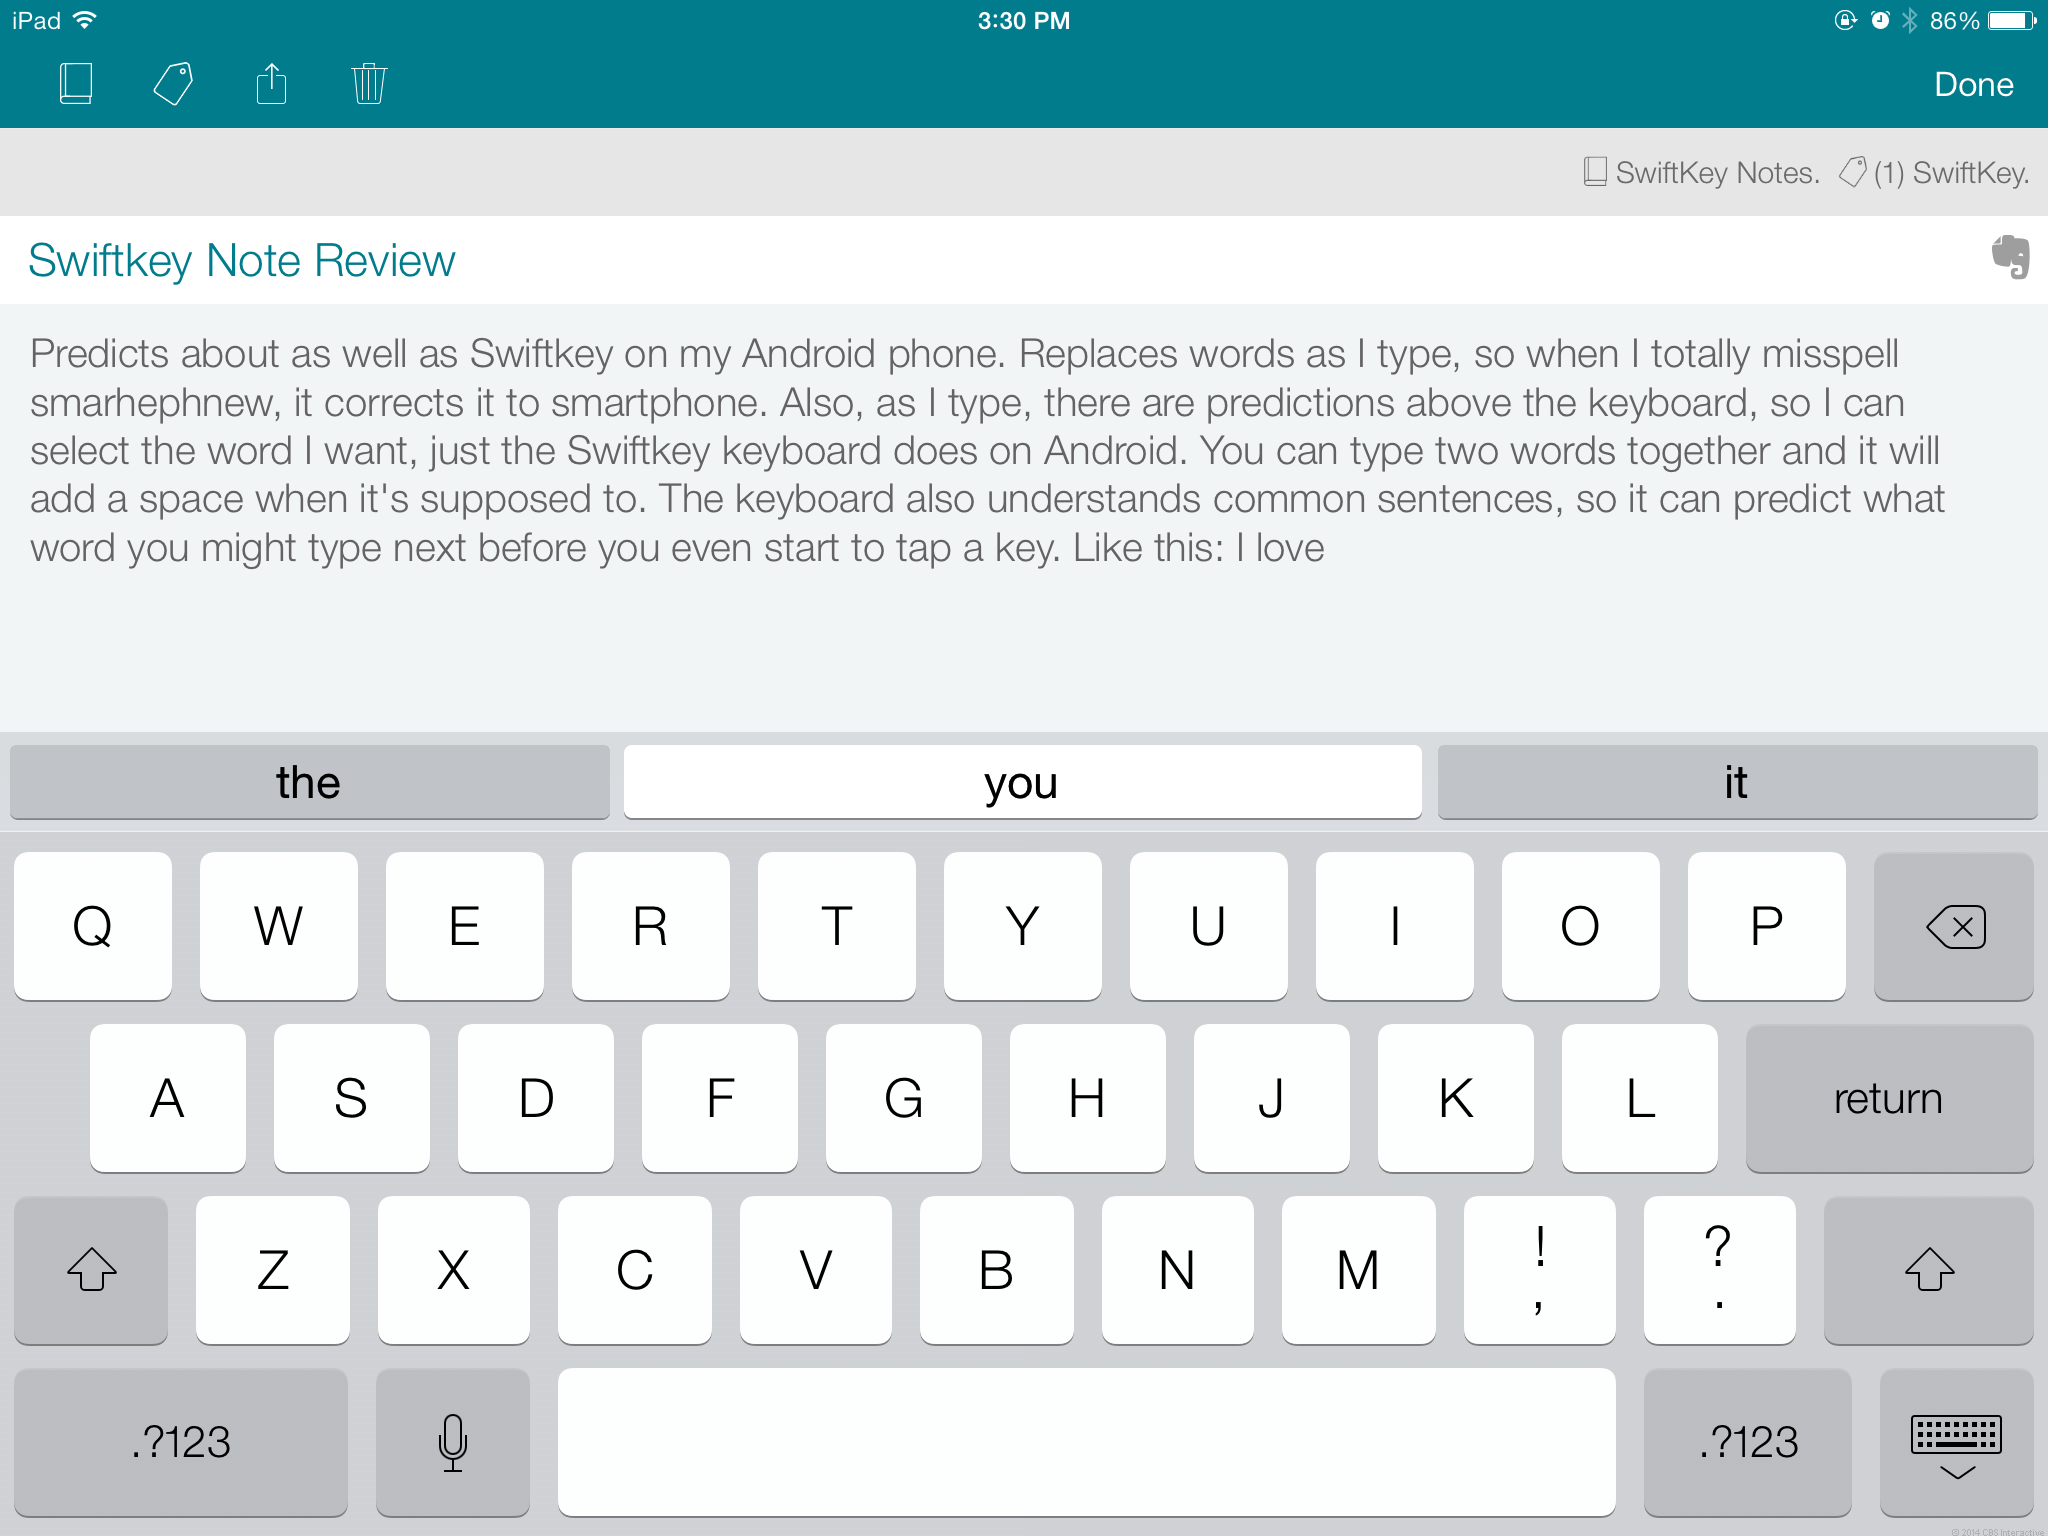 """<p>SwiftKey is a much-loved keyboard for Android that, until now, hasn't made its way to iOS. That all changes with <a href=""""http://reviews.cnet.com/software/swiftkey-note/4505-3513_7-35834928.html"""" >SwiftKey Note</a>, a note-taking app that uses the company's predictive keyboard to make your typing faster and more accurate, and then syncs everything you write with <a href=""""http://reviews.cnet.com/software/evernote-ios/4505-3513_7-35536151.html"""">Evernote</a>.</p>  <p>SwiftKey's keyboard understands what you're typing based on the letters you tap, so it can correct misspellings and give you predictions for your next word.</p>"""